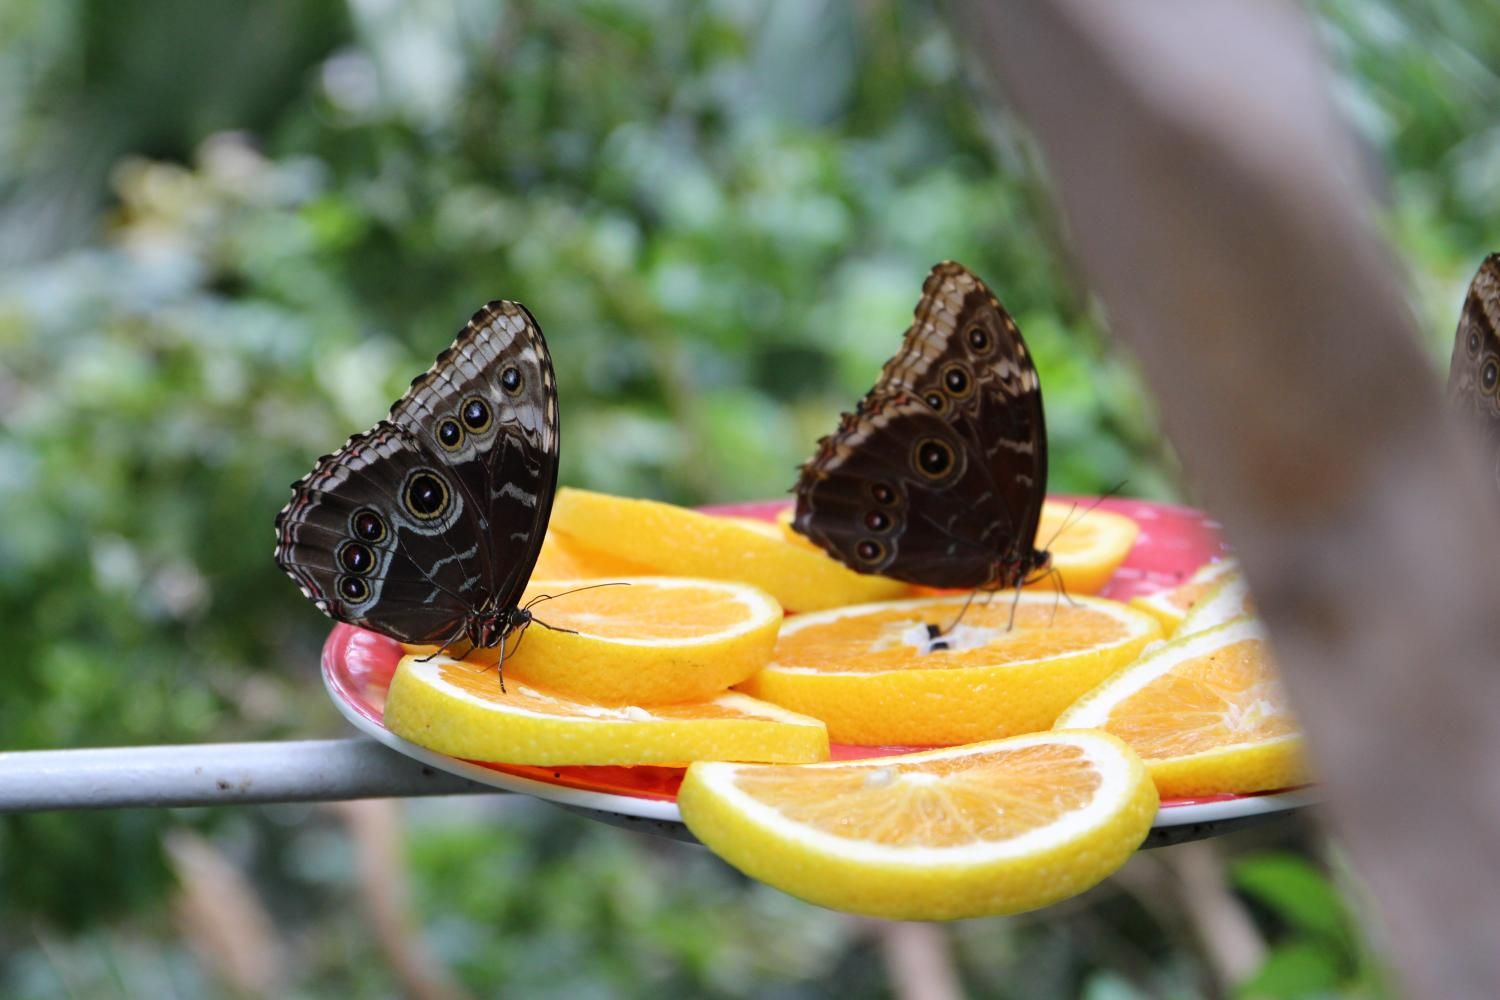 The butterflies within the glass dome of the Rainforest Exhibit are fed at each level with various types of citrus fruits.